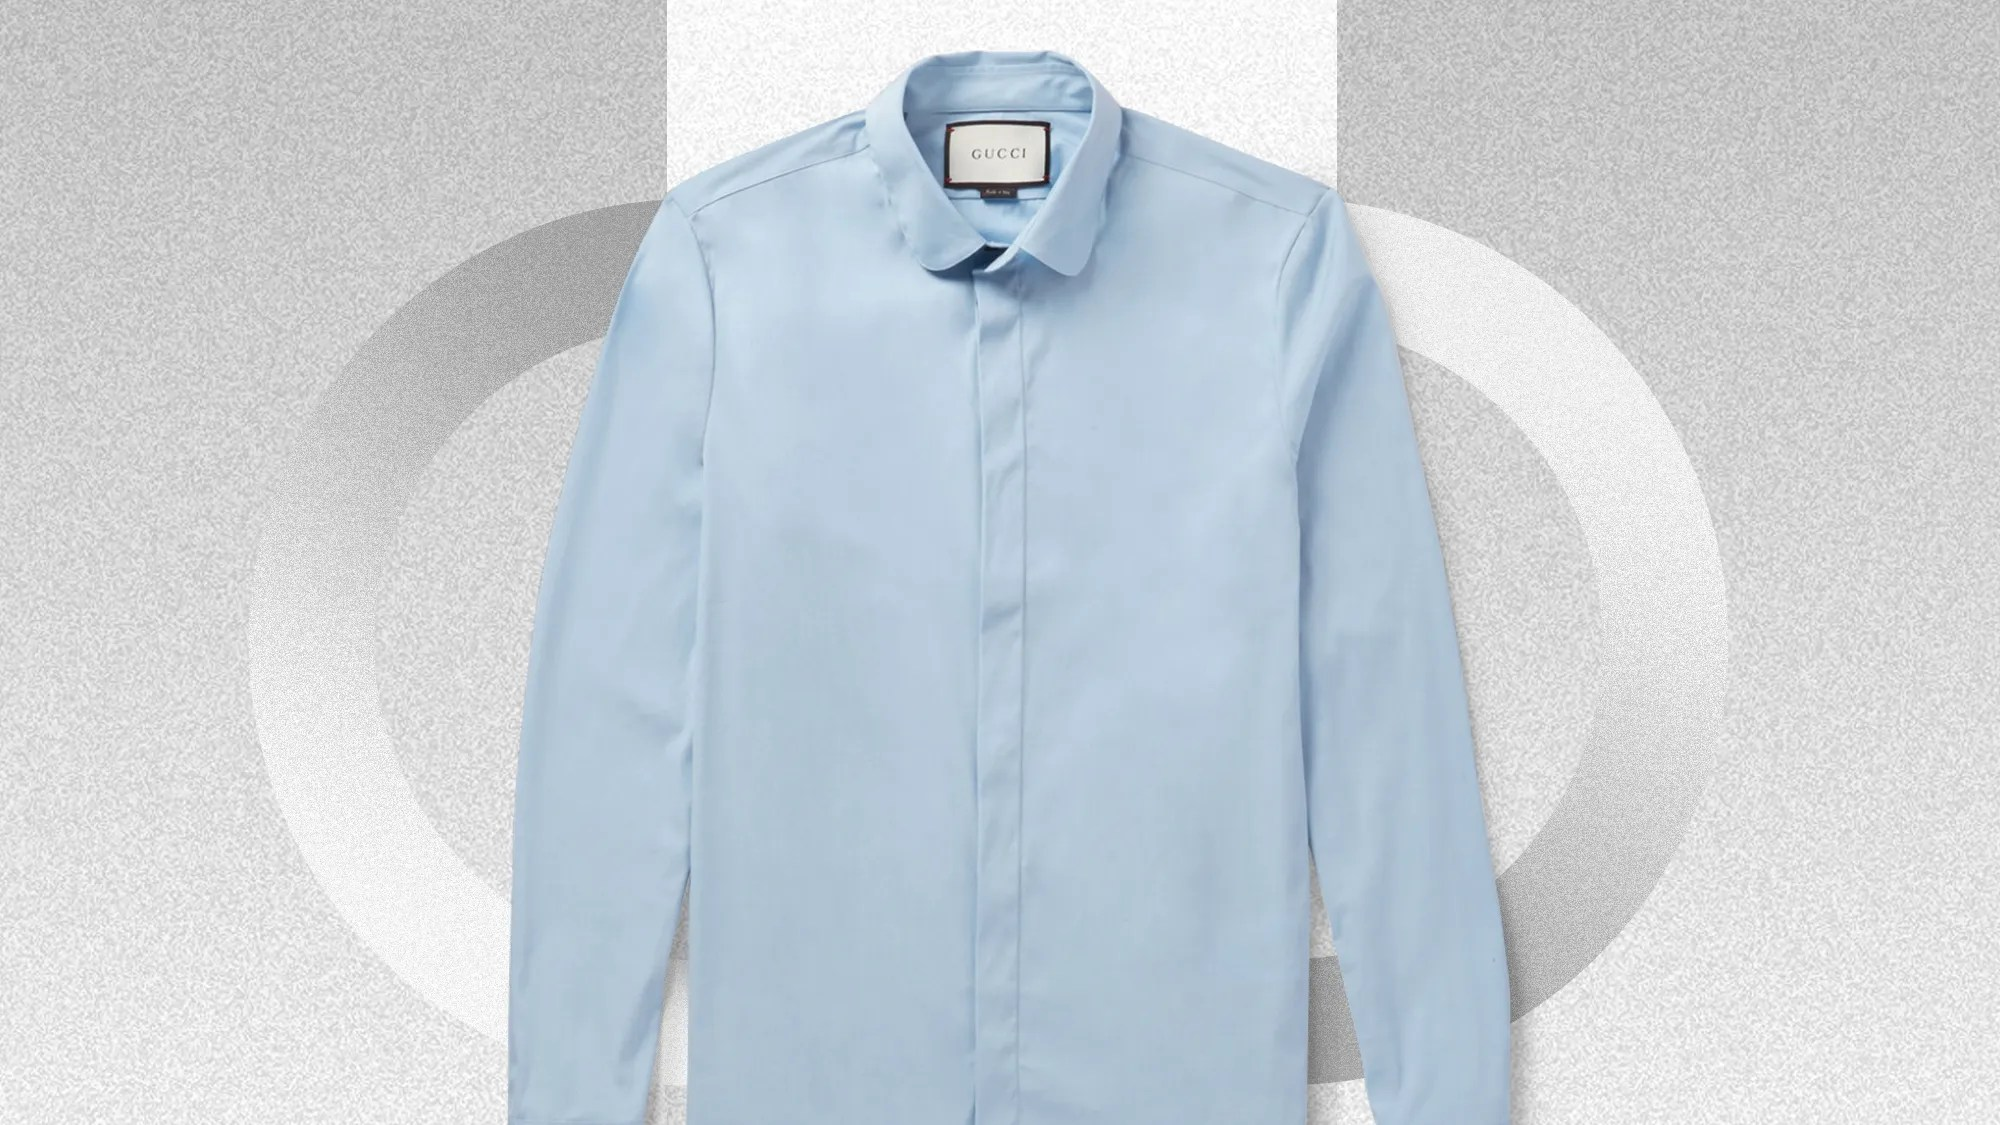 Le Meilleur Ace Gucci S New Look With This One Shirt Gq Ce Mois Ci